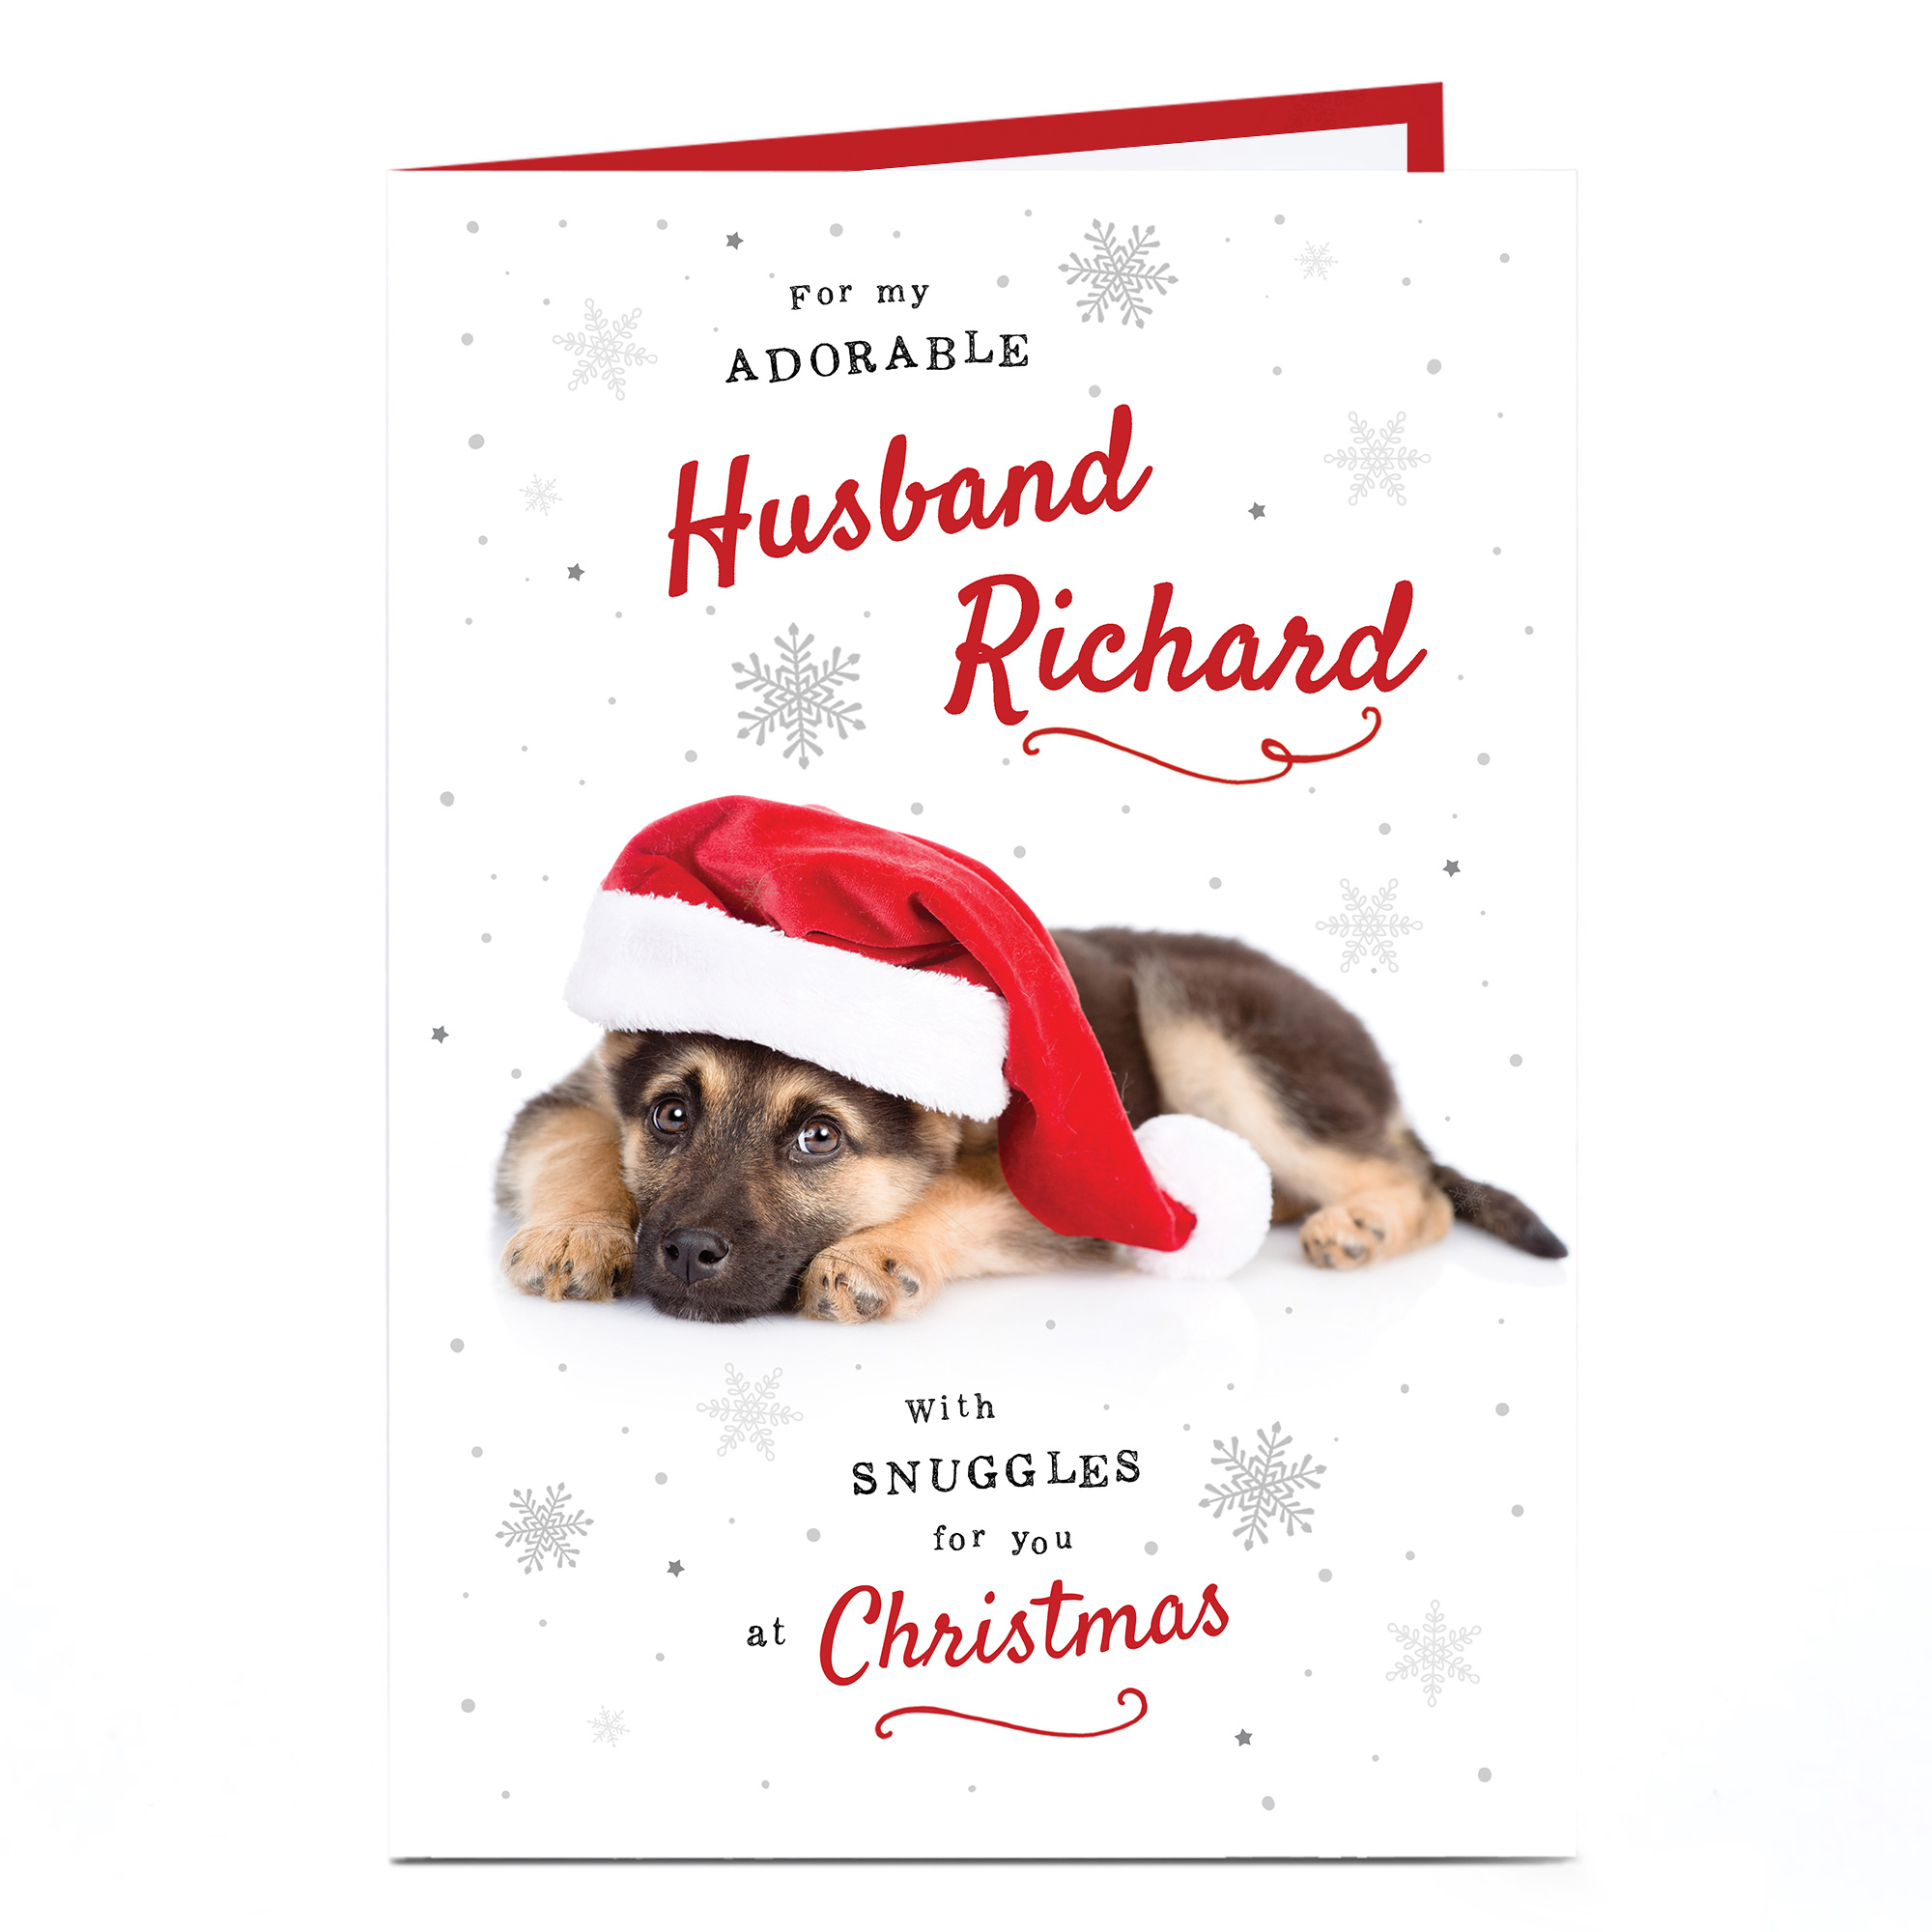 Personalised Christmas Card - Adorable Husband